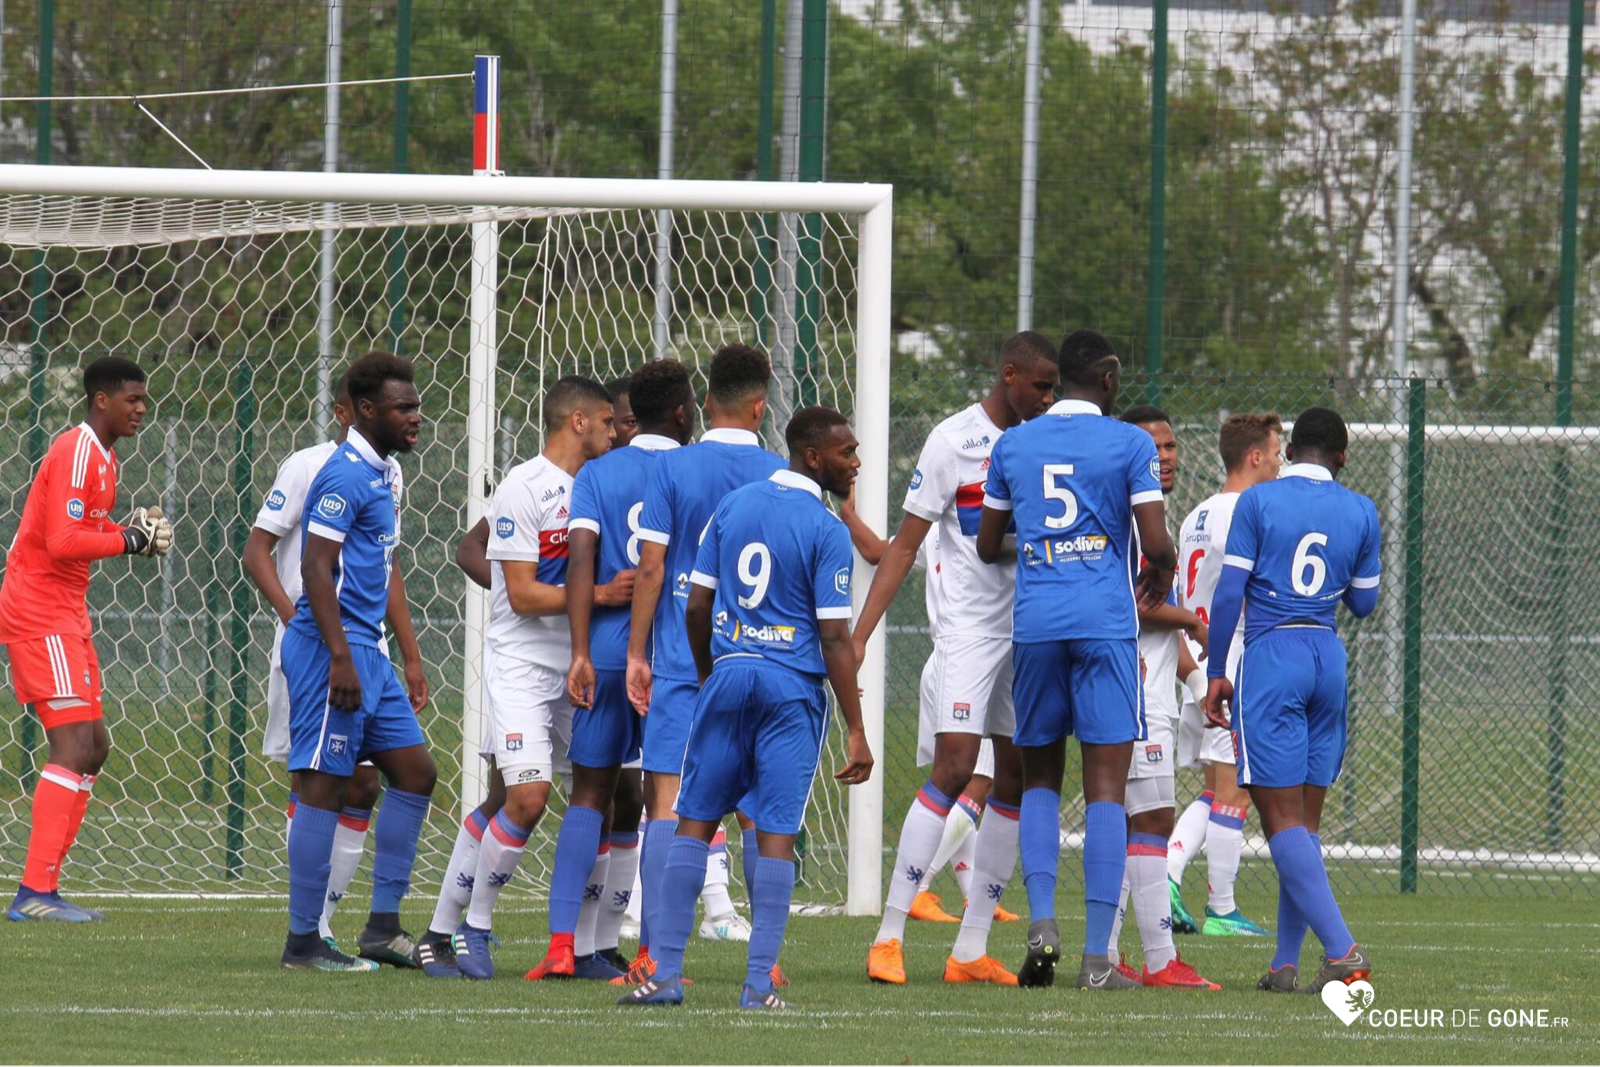 [Photos] Les U19 dominent le leader Auxerre (4-1)